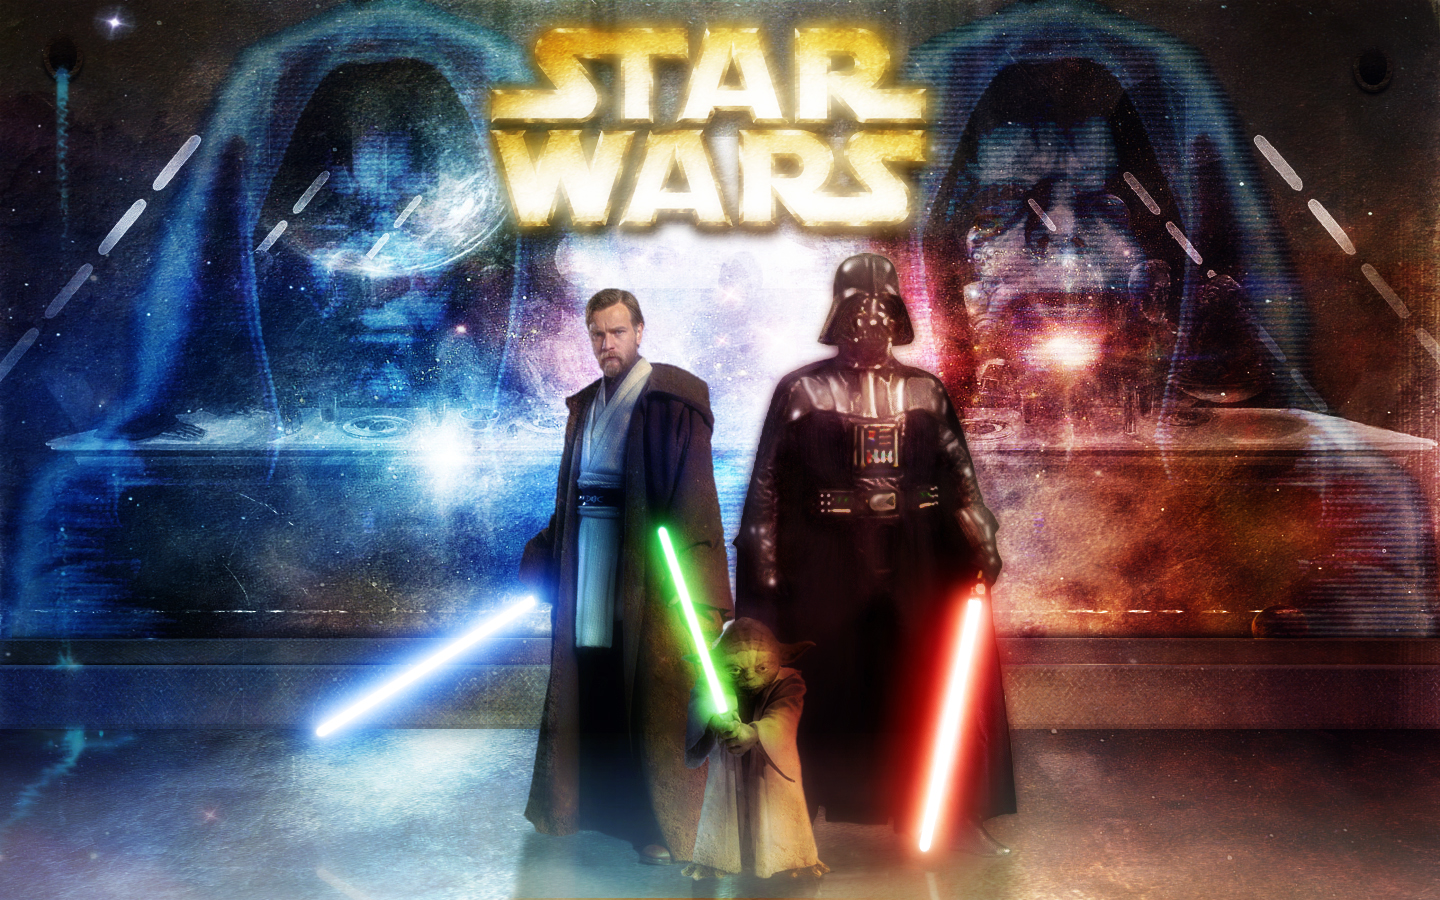 Star Wars Wallpaper Set 9 Awesome Wallpapers 1440x900